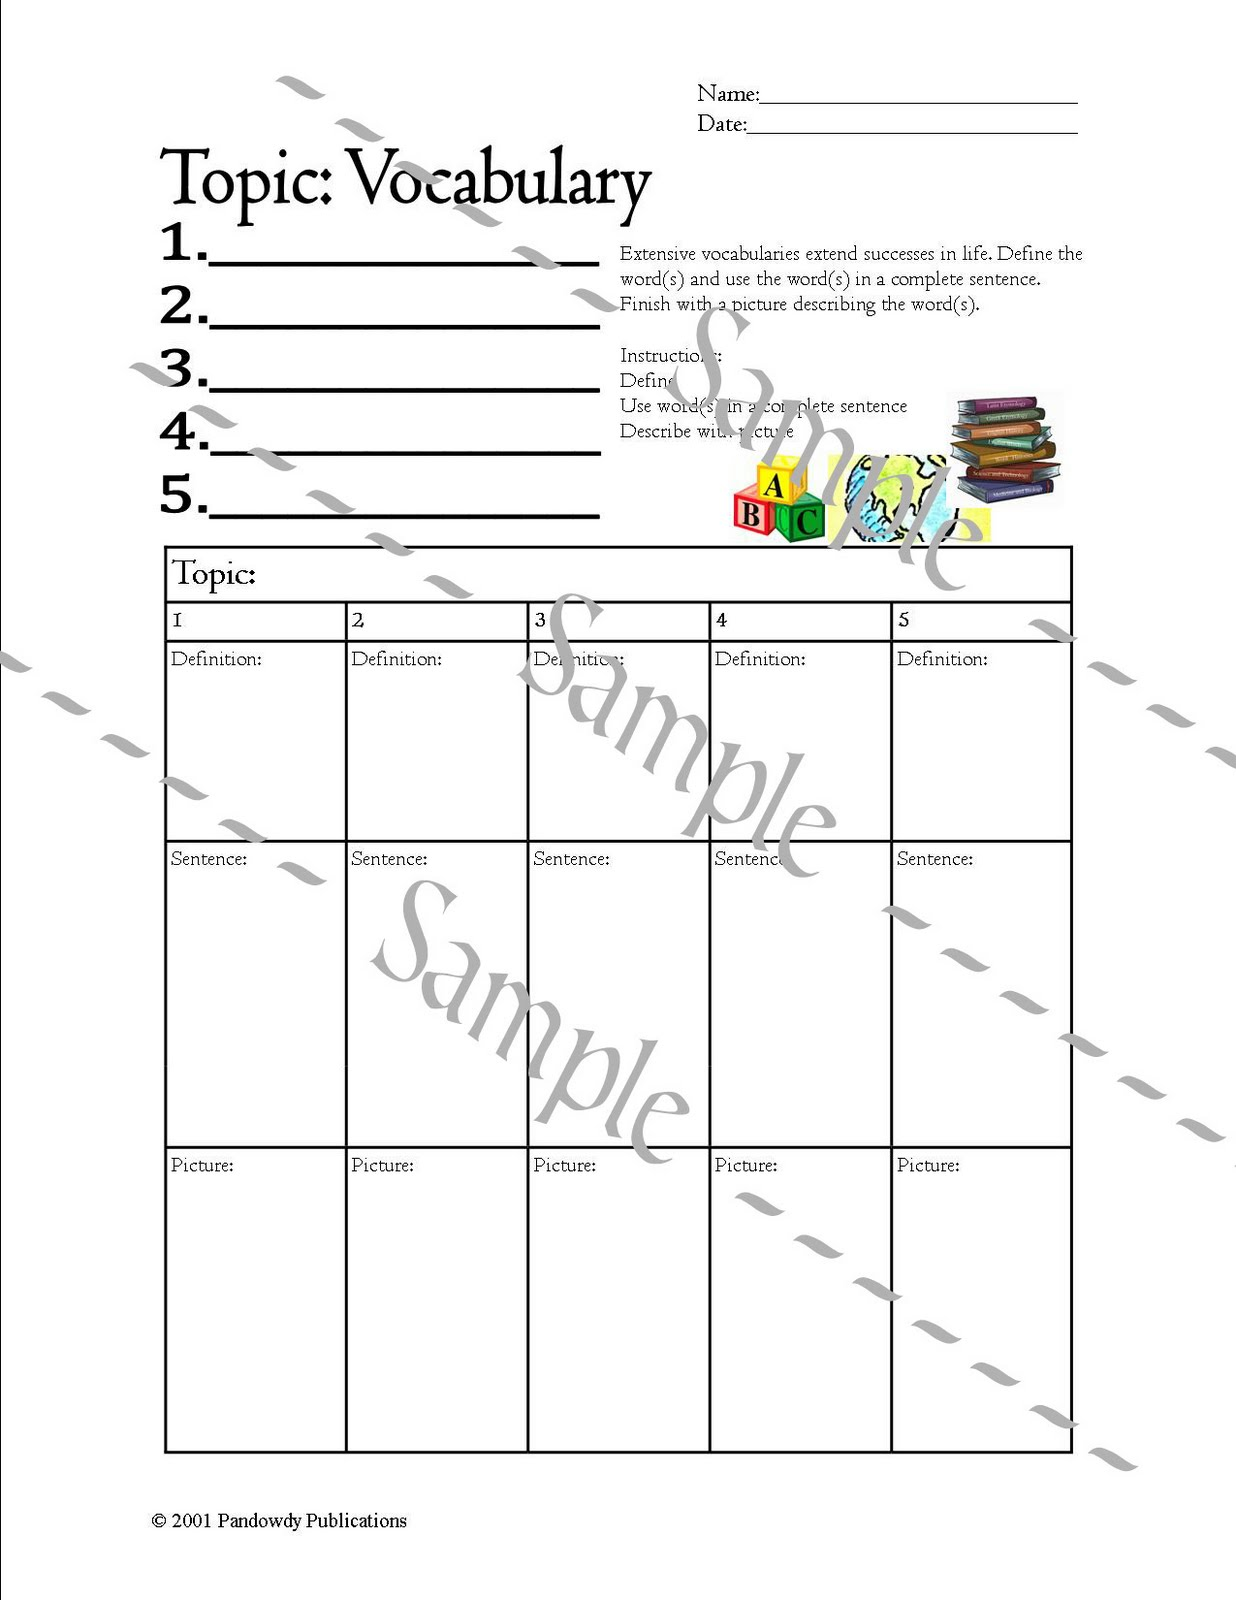 Pandowdy Publications Generic Vocabulary Worksheet